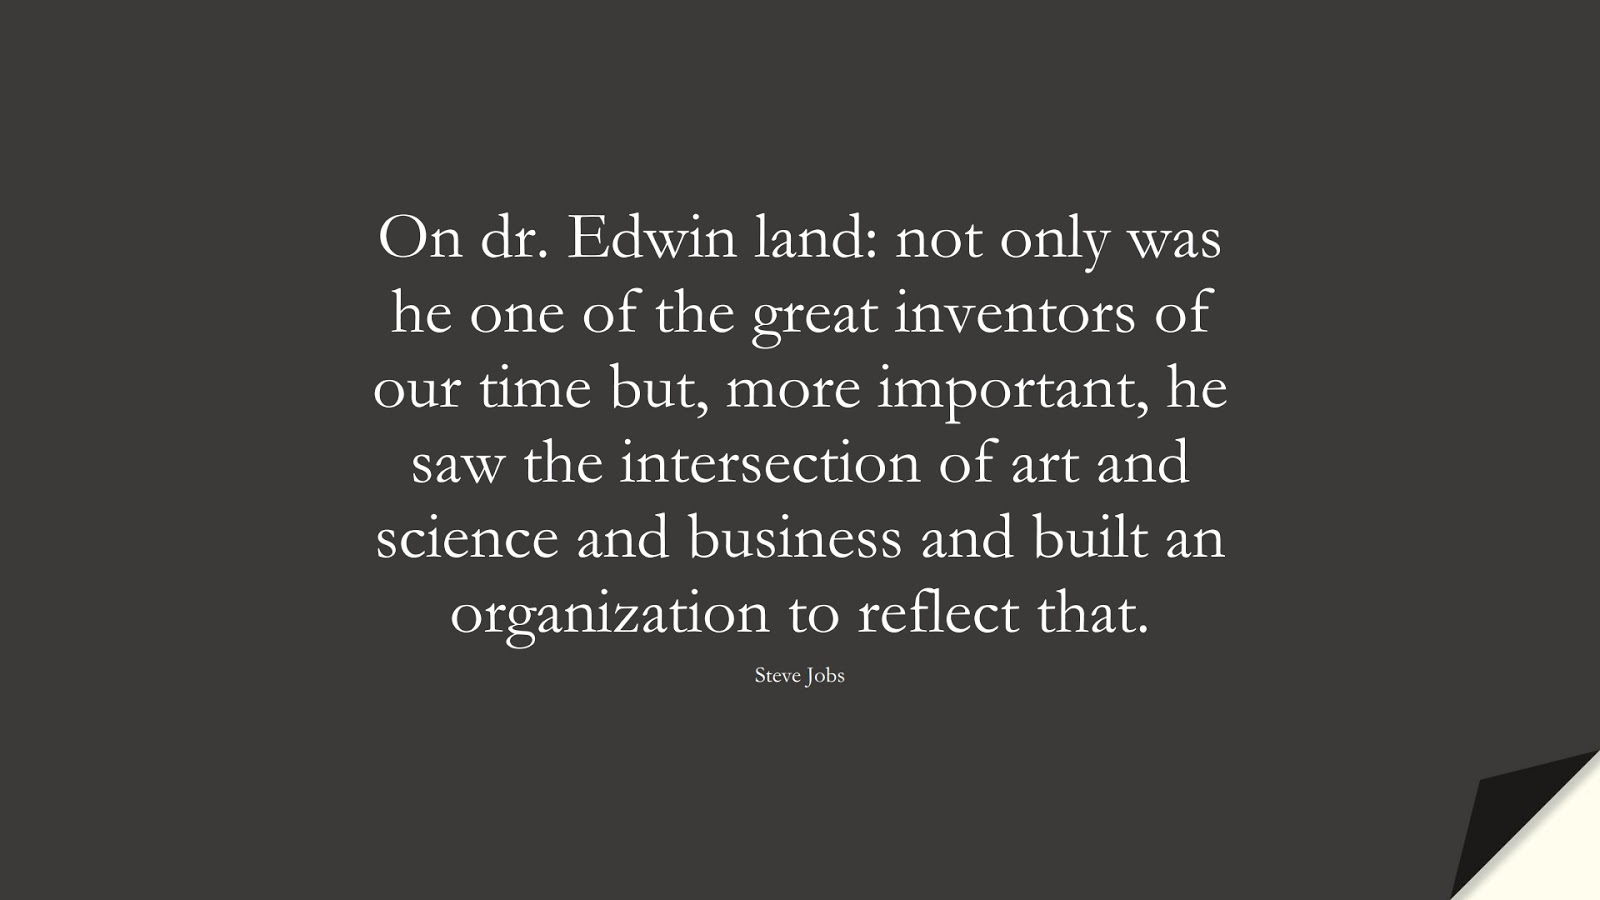 On dr. Edwin land: not only was he one of the great inventors of our time but, more important, he saw the intersection of art and science and business and built an organization to reflect that. (Steve Jobs);  #SteveJobsQuotes